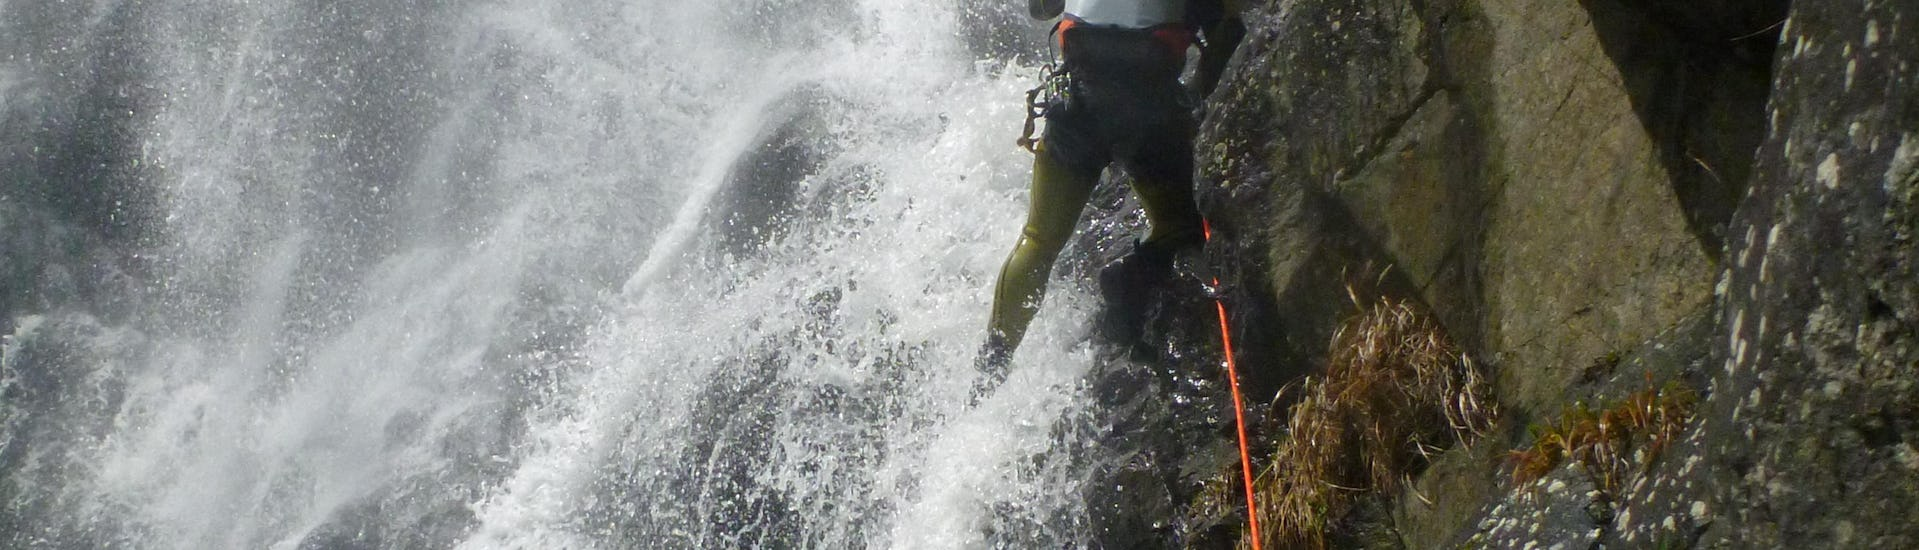 Canyoning for Pros - Strindenbach